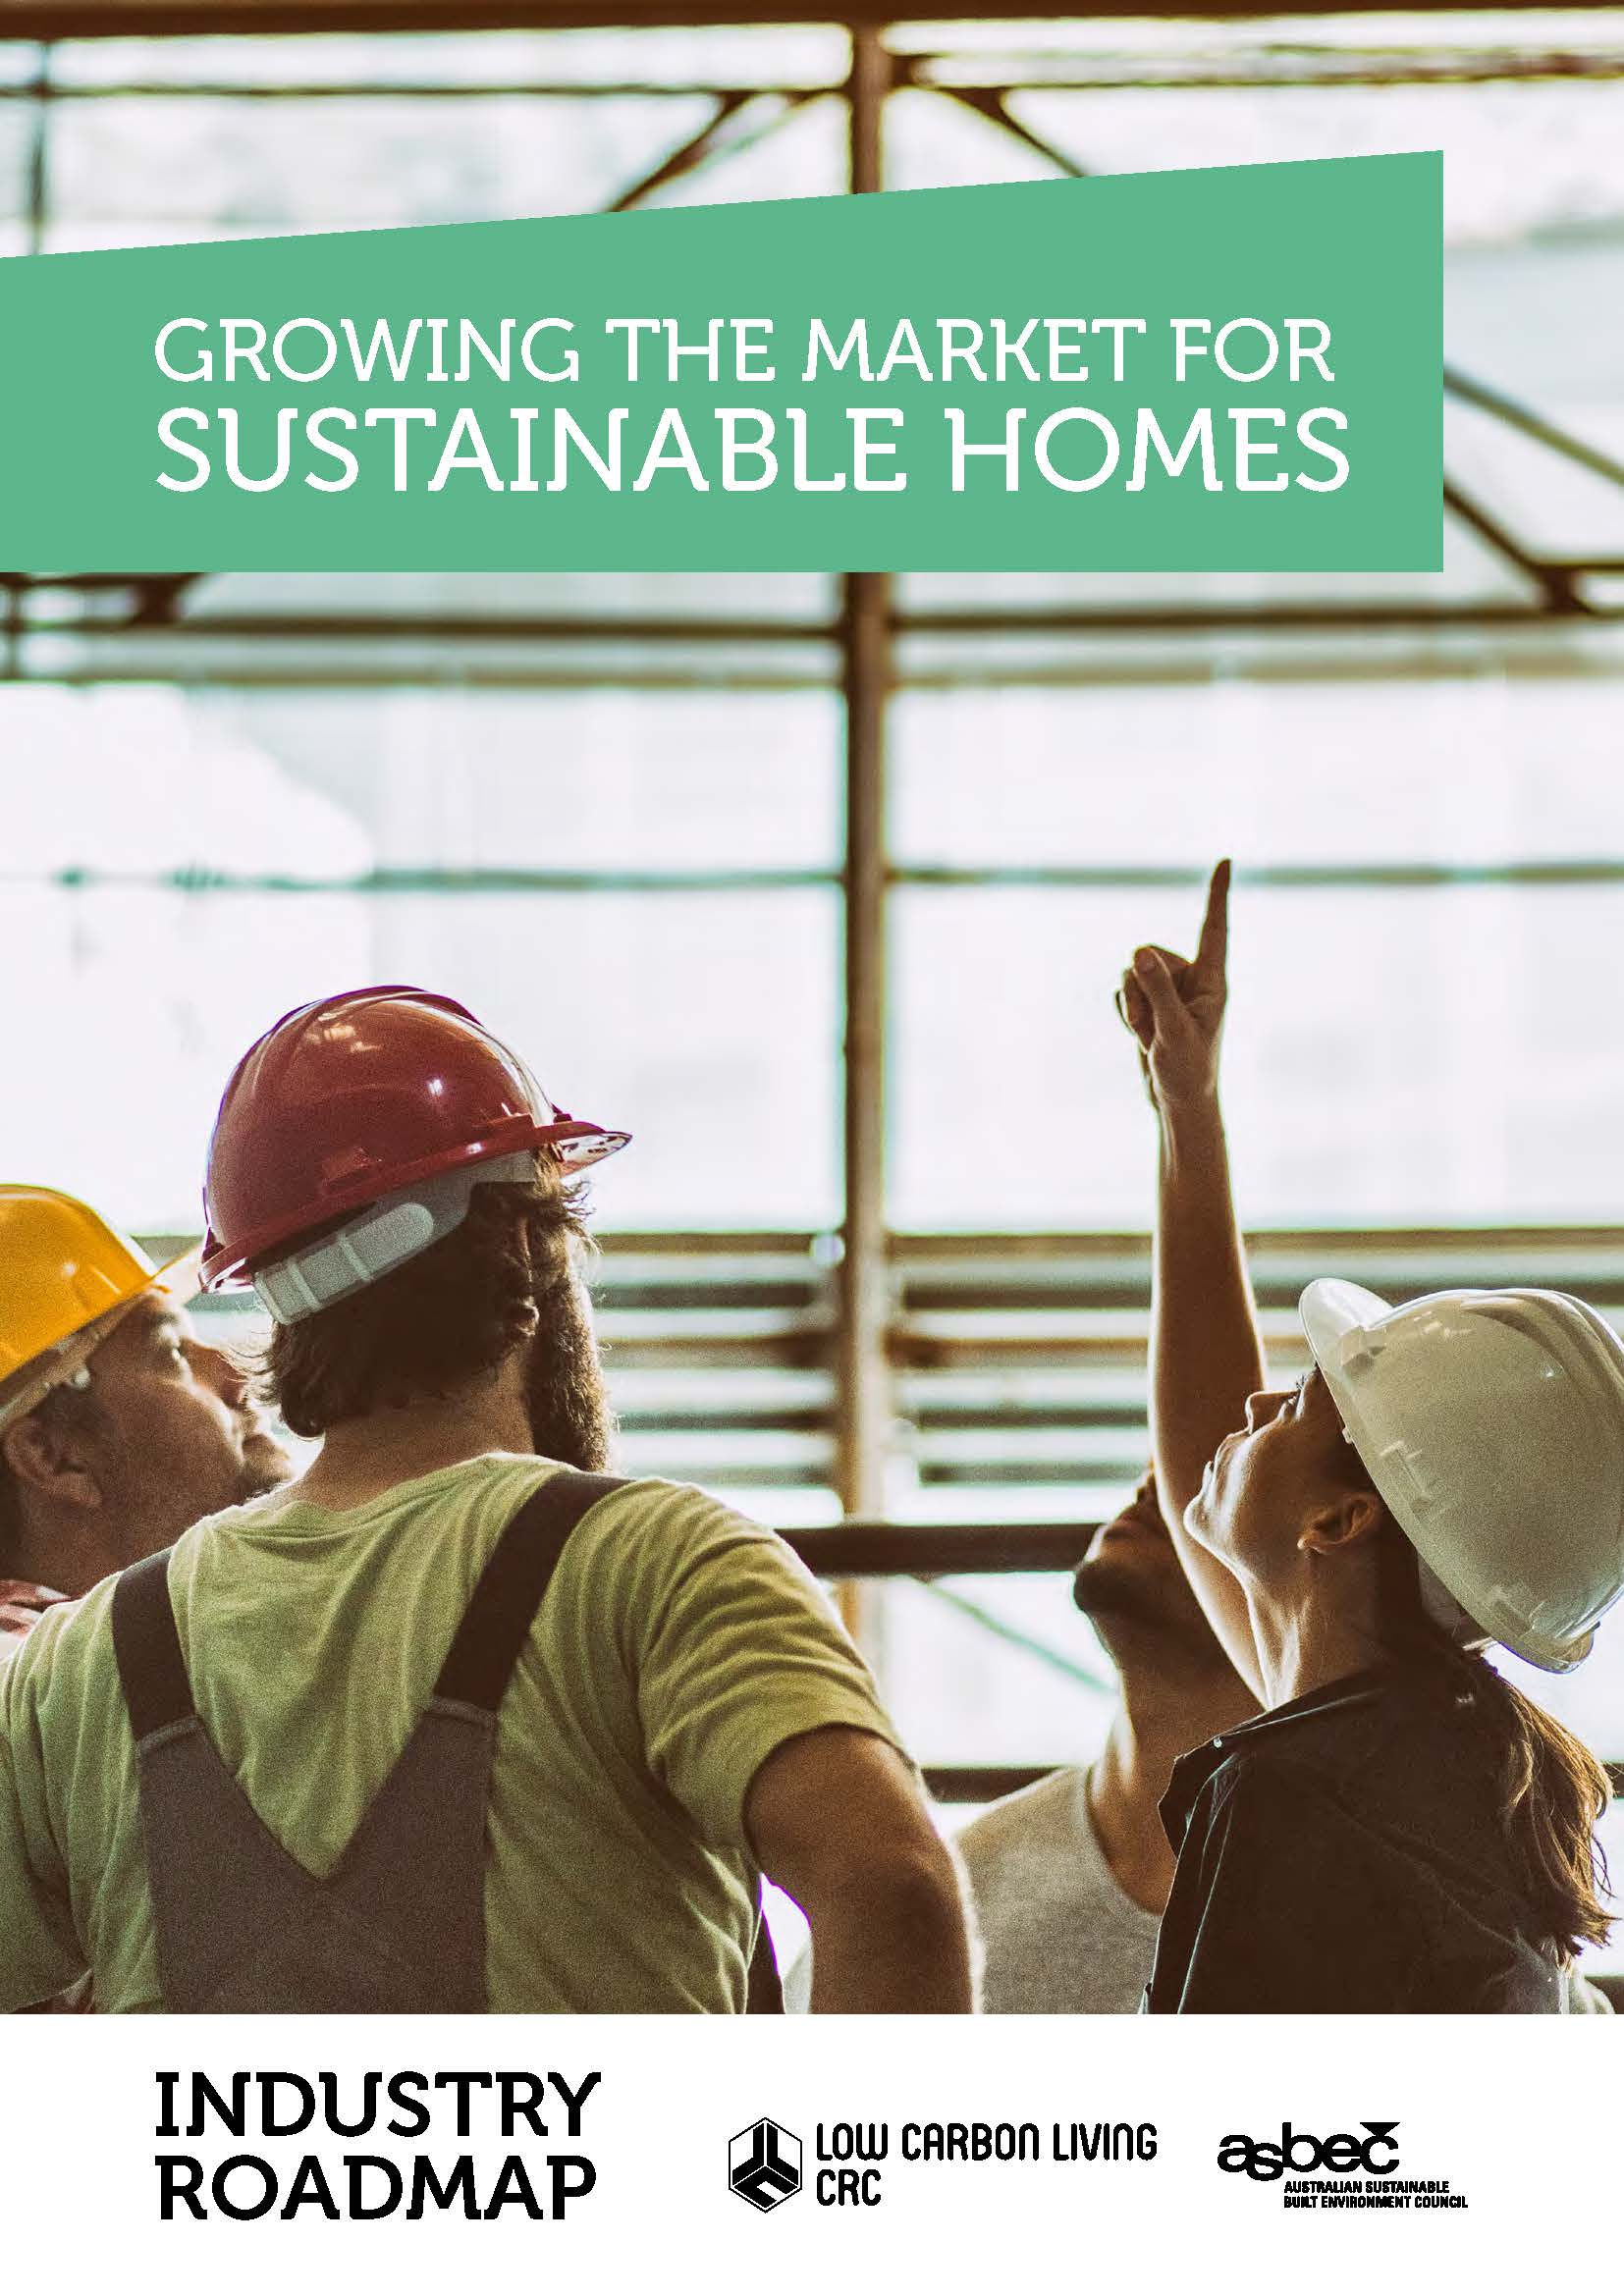 190701-ASBEC-CRCLCL-Growing-Market-for-Sustainable-Homes-web.jpg